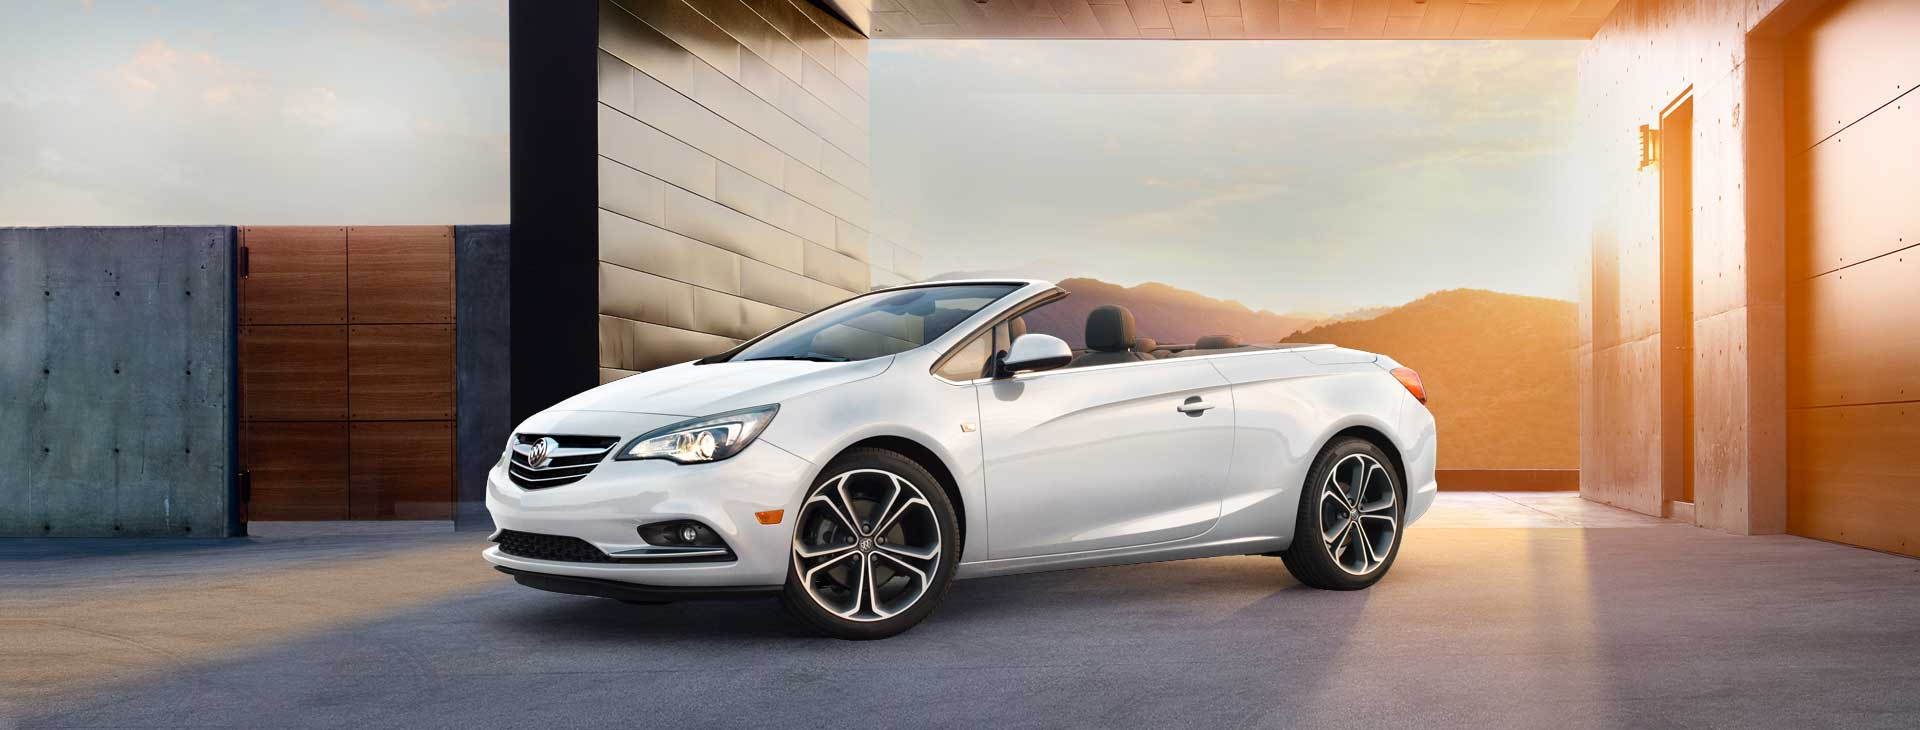 2016 Buick Cascada Colors Released | GM Authority ...